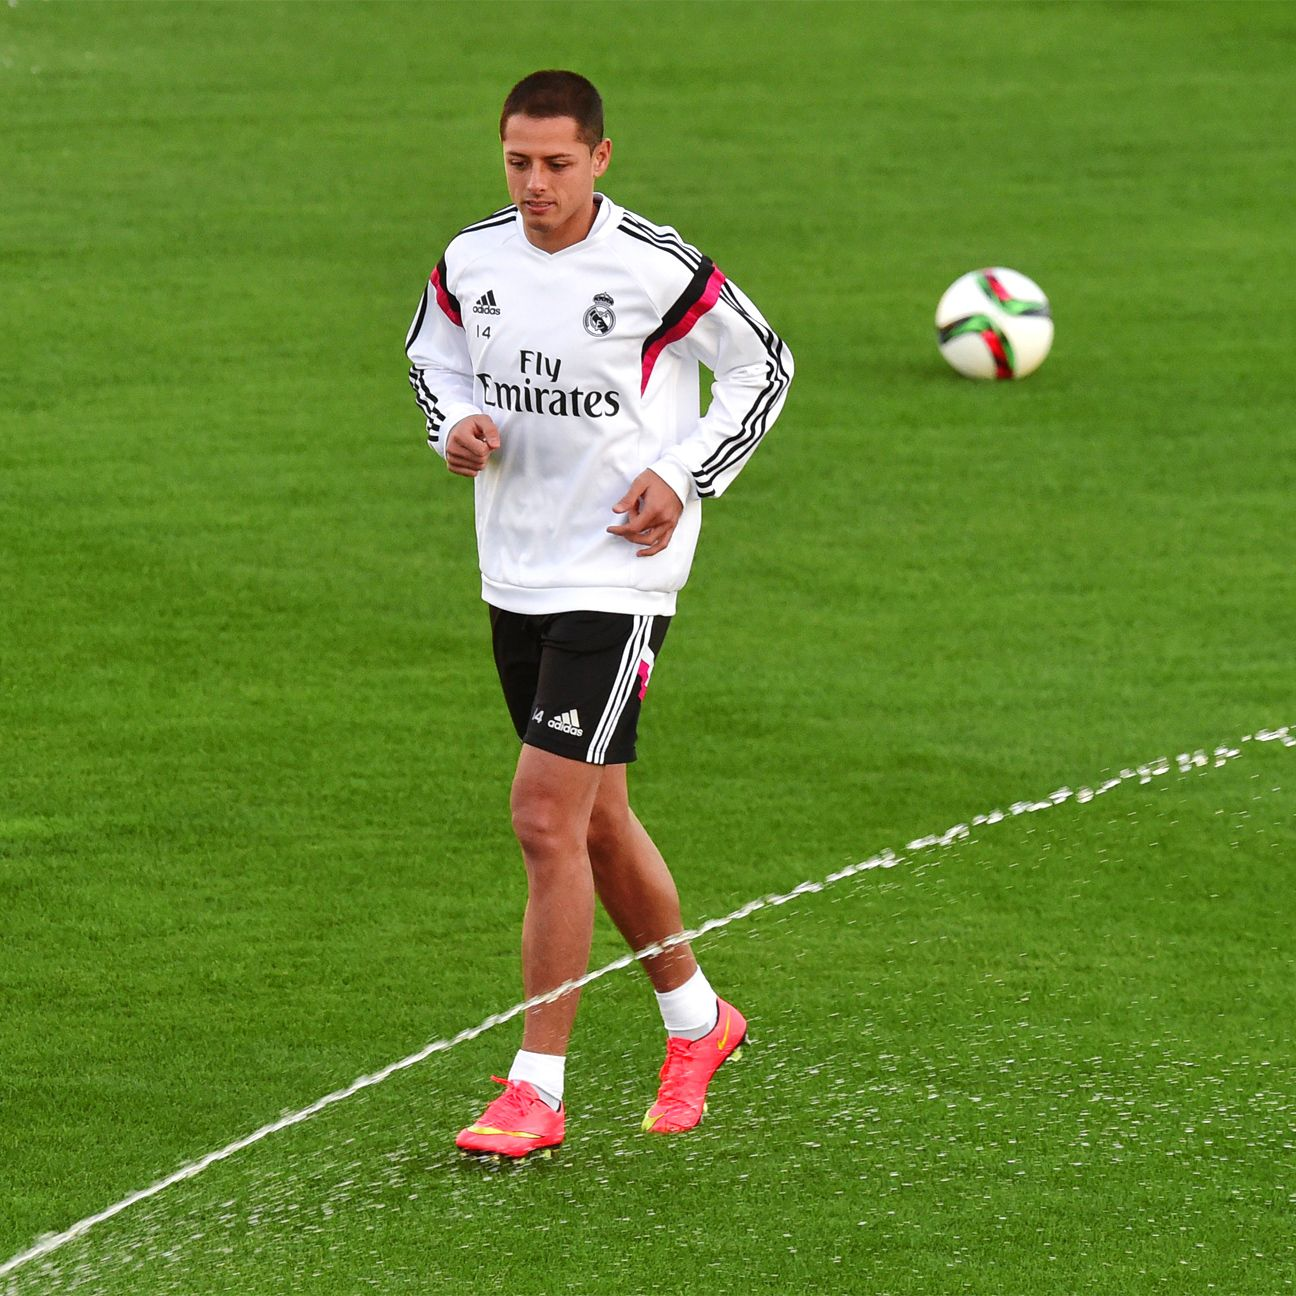 Mexico forward Chicharito Hernandez will likely have no shortage of suitors should he not remain with Real Madrid.